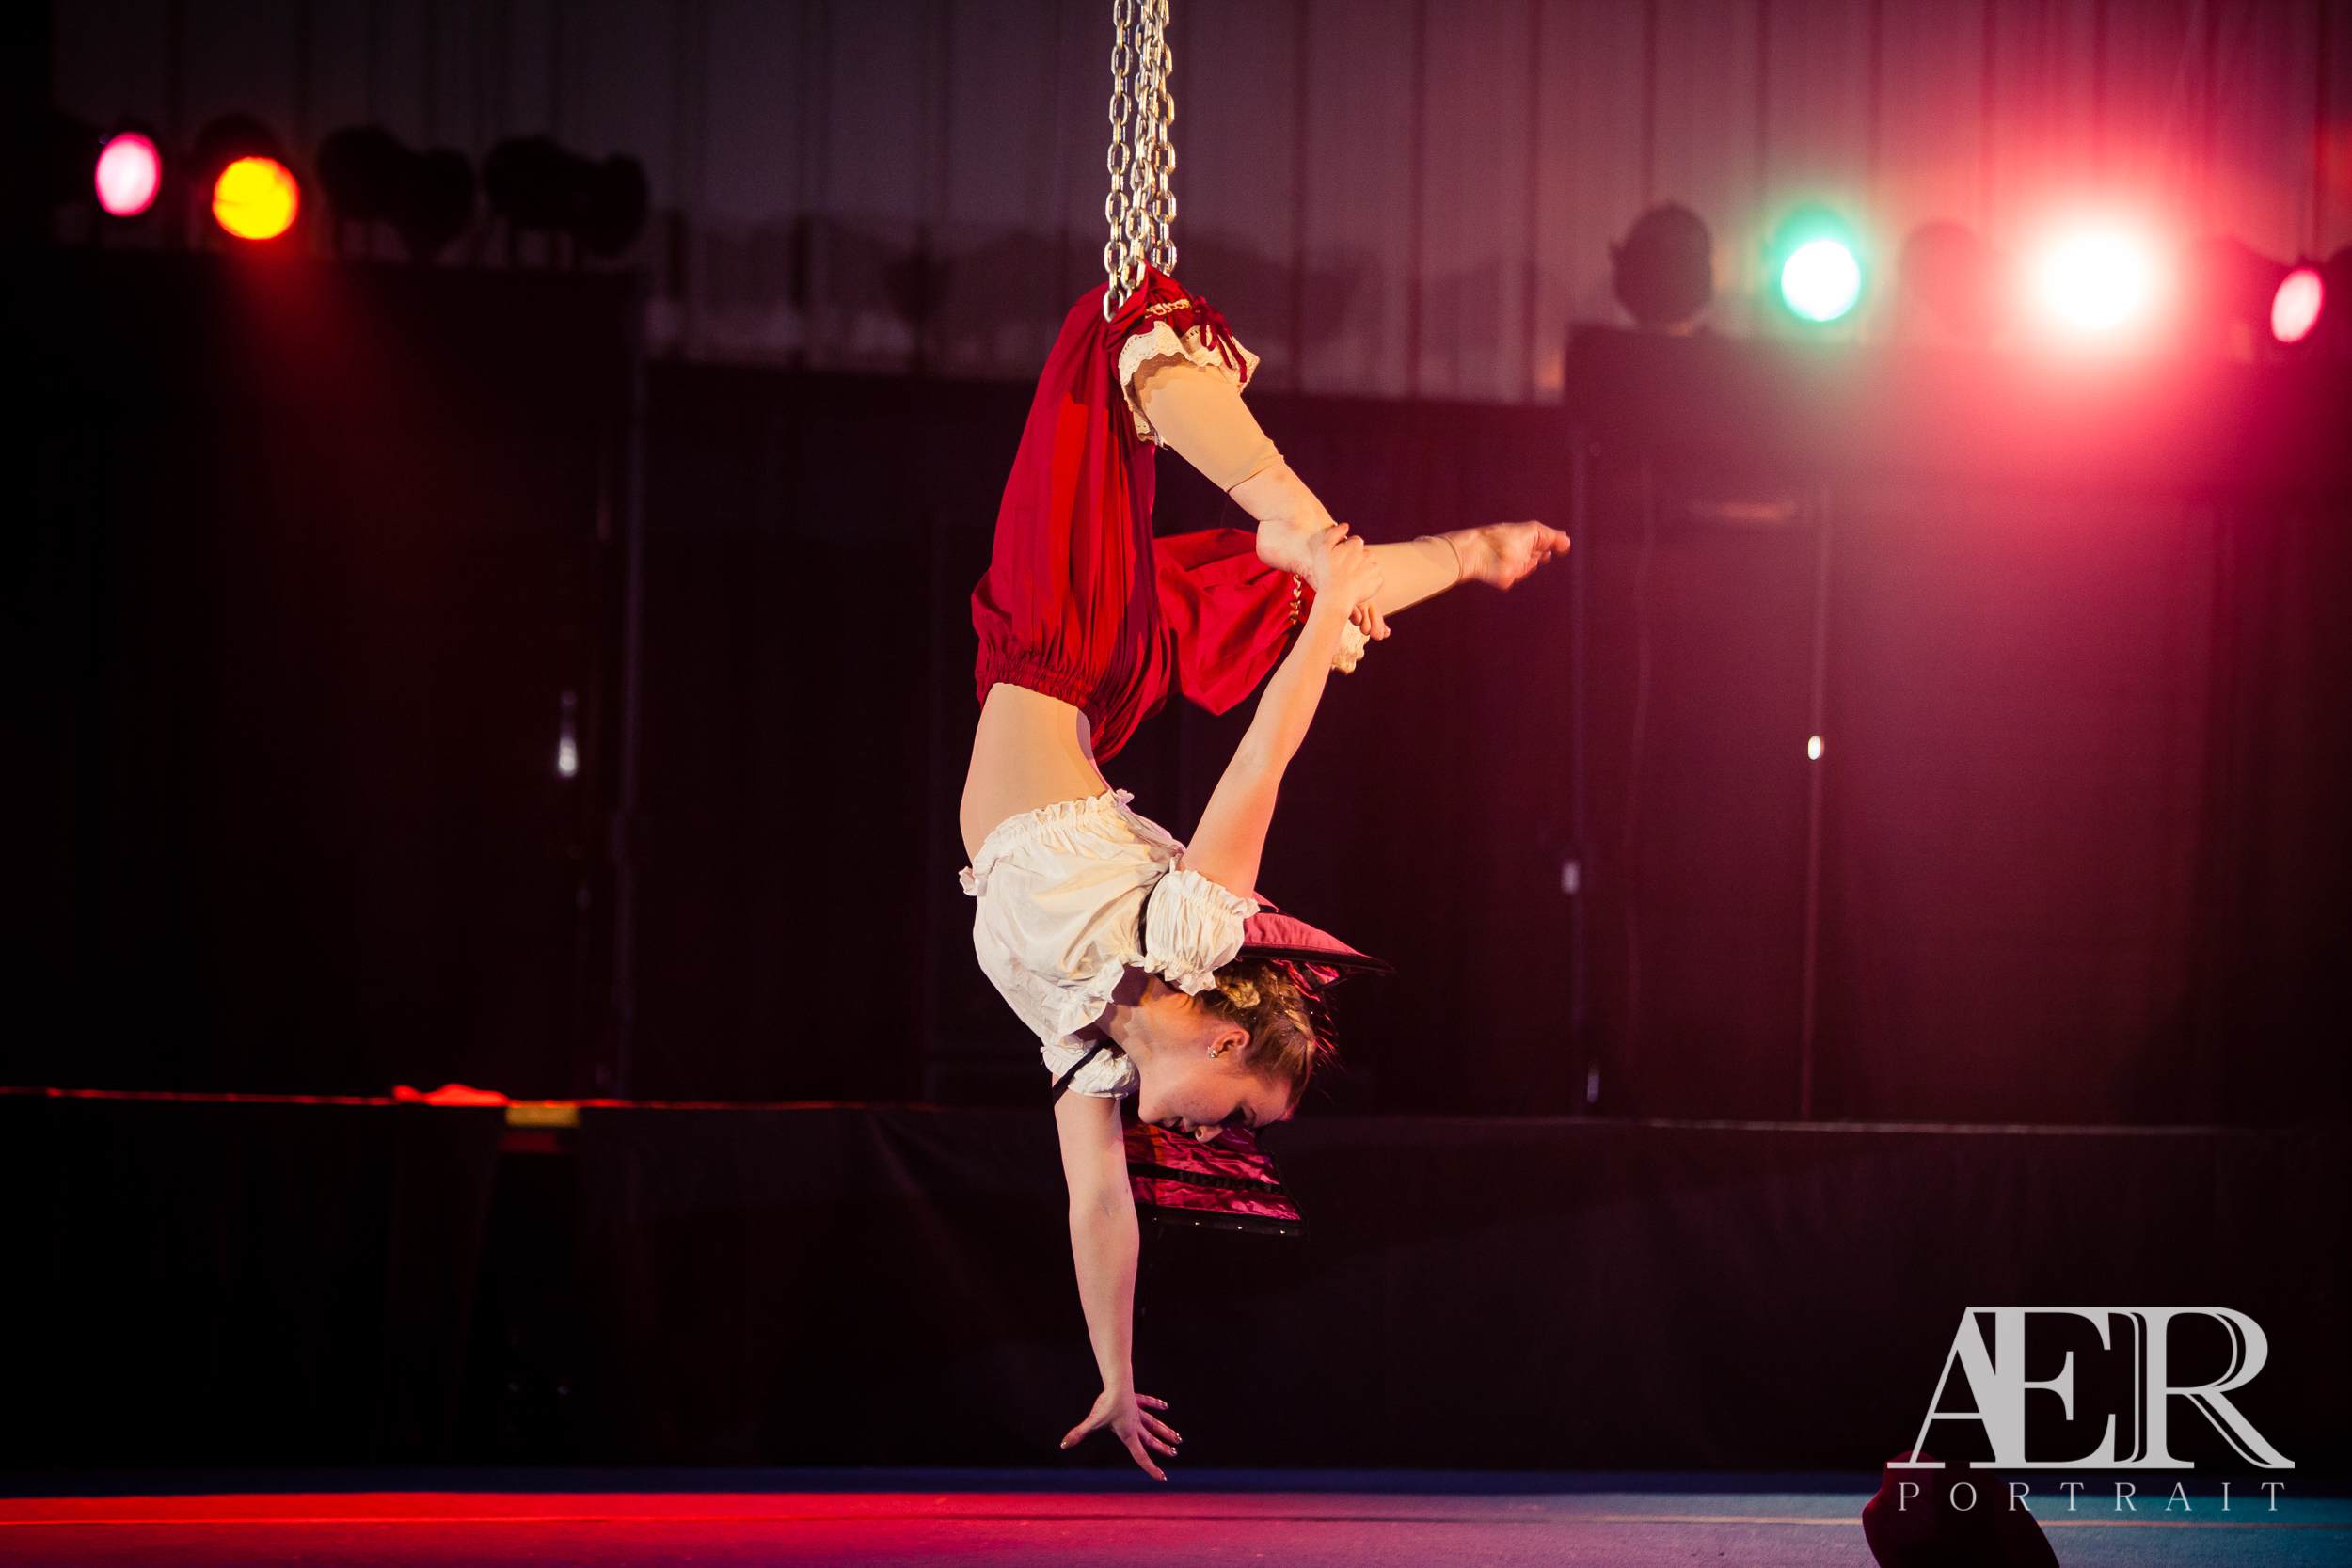 Louisville Performing Arts Photography - Turners Circus - AER Portrait 16